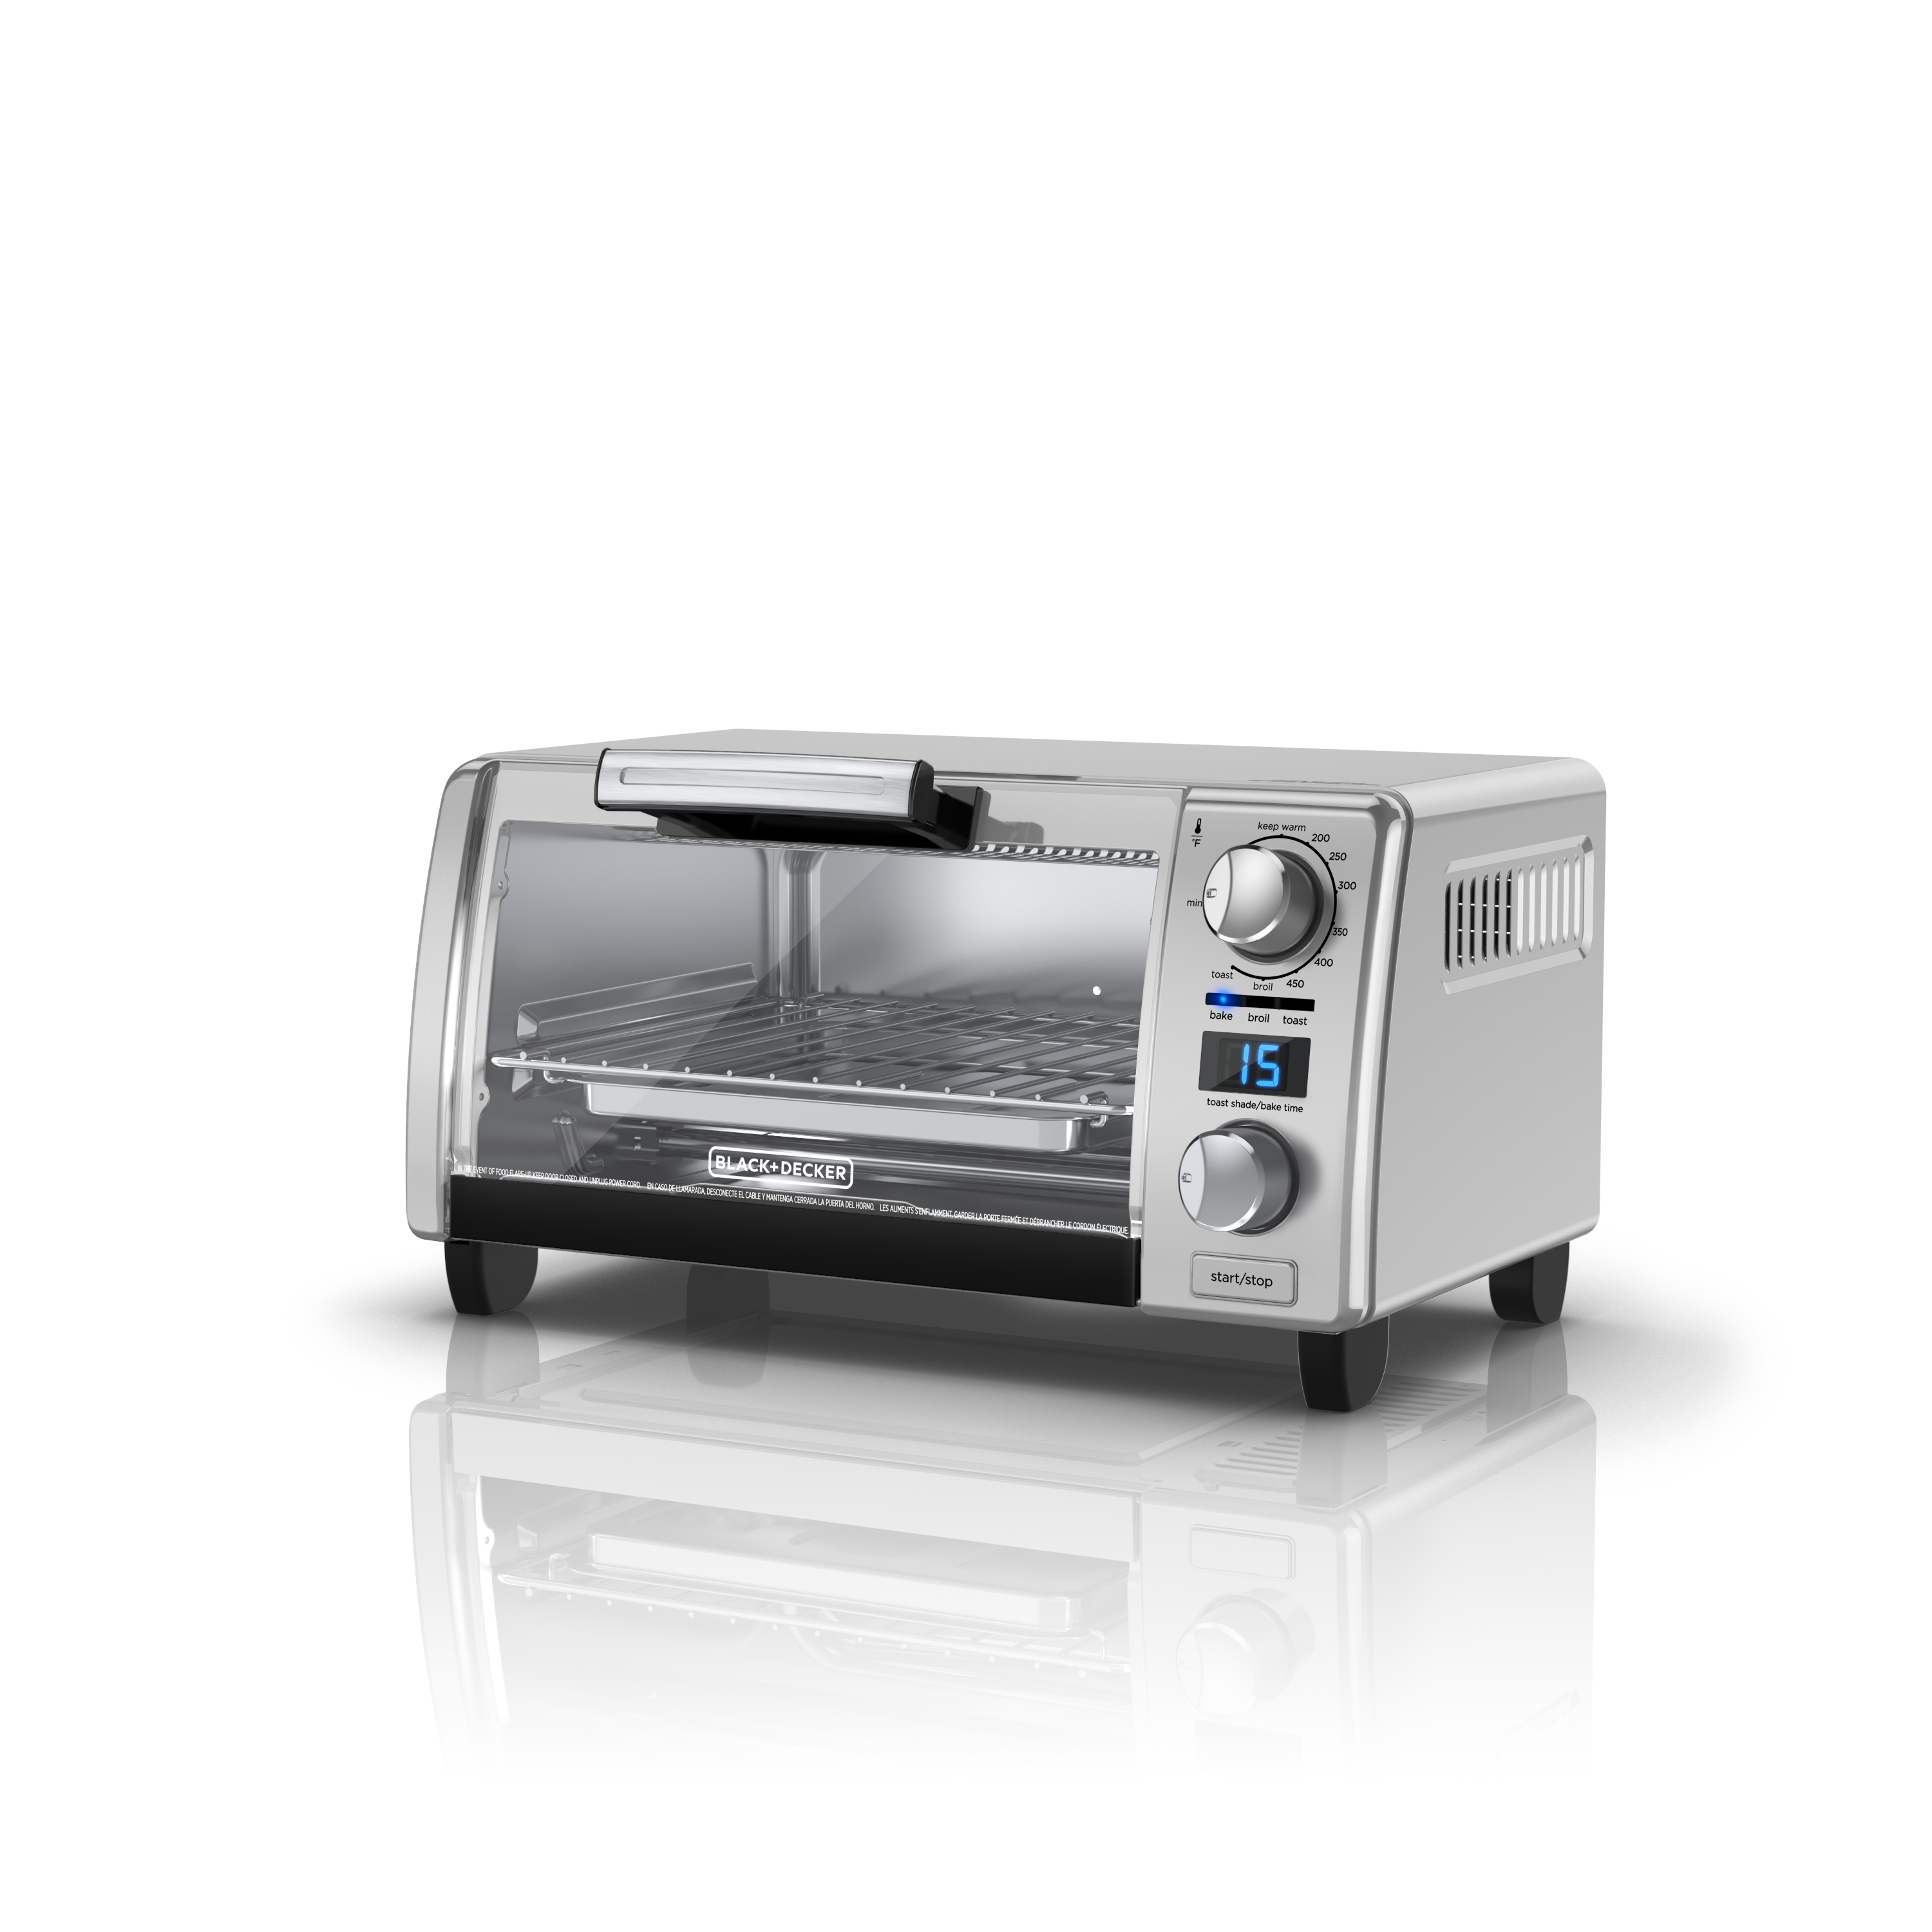 Black & Decker 4-Slice Natural Convection Digital Toaster Oven, Silver, TOD1770G by BLACK DECKER